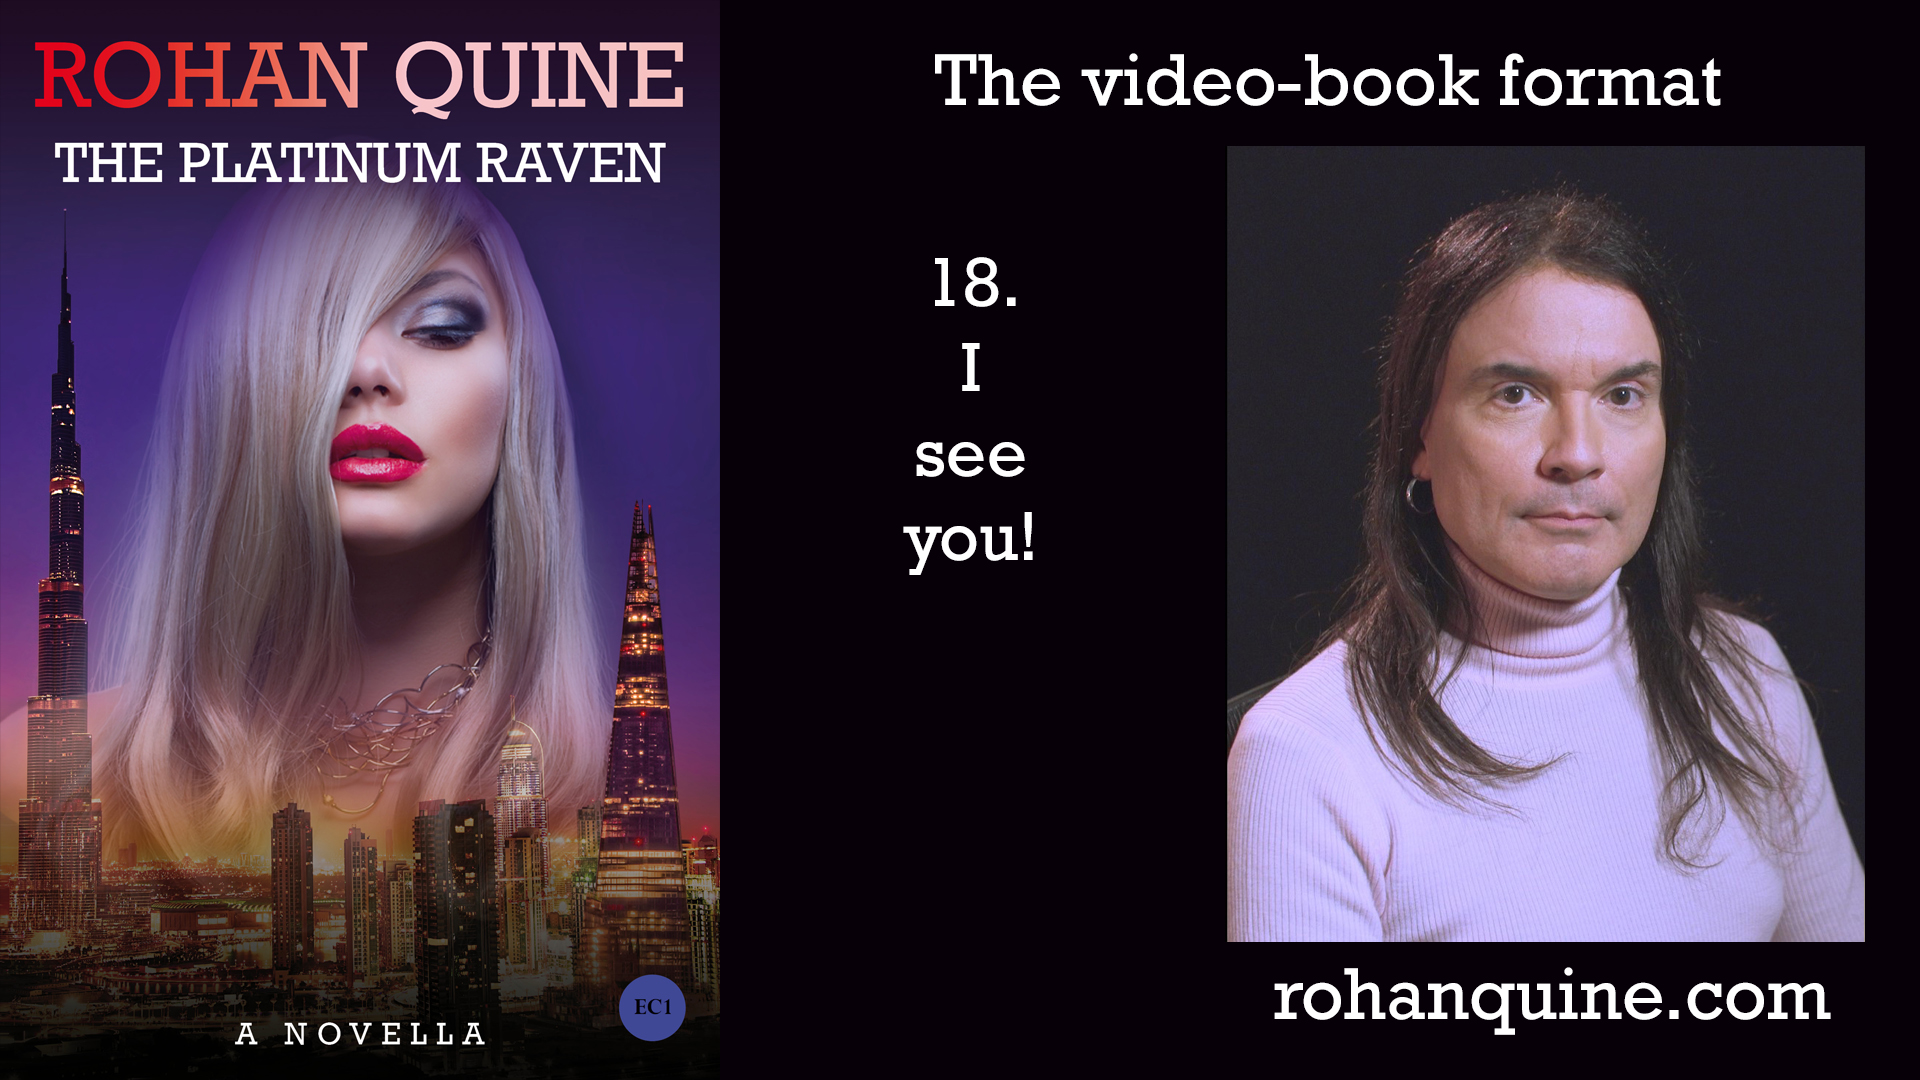 THE PLATINUM RAVEN by Rohan Quine - video-book format - chapter 18